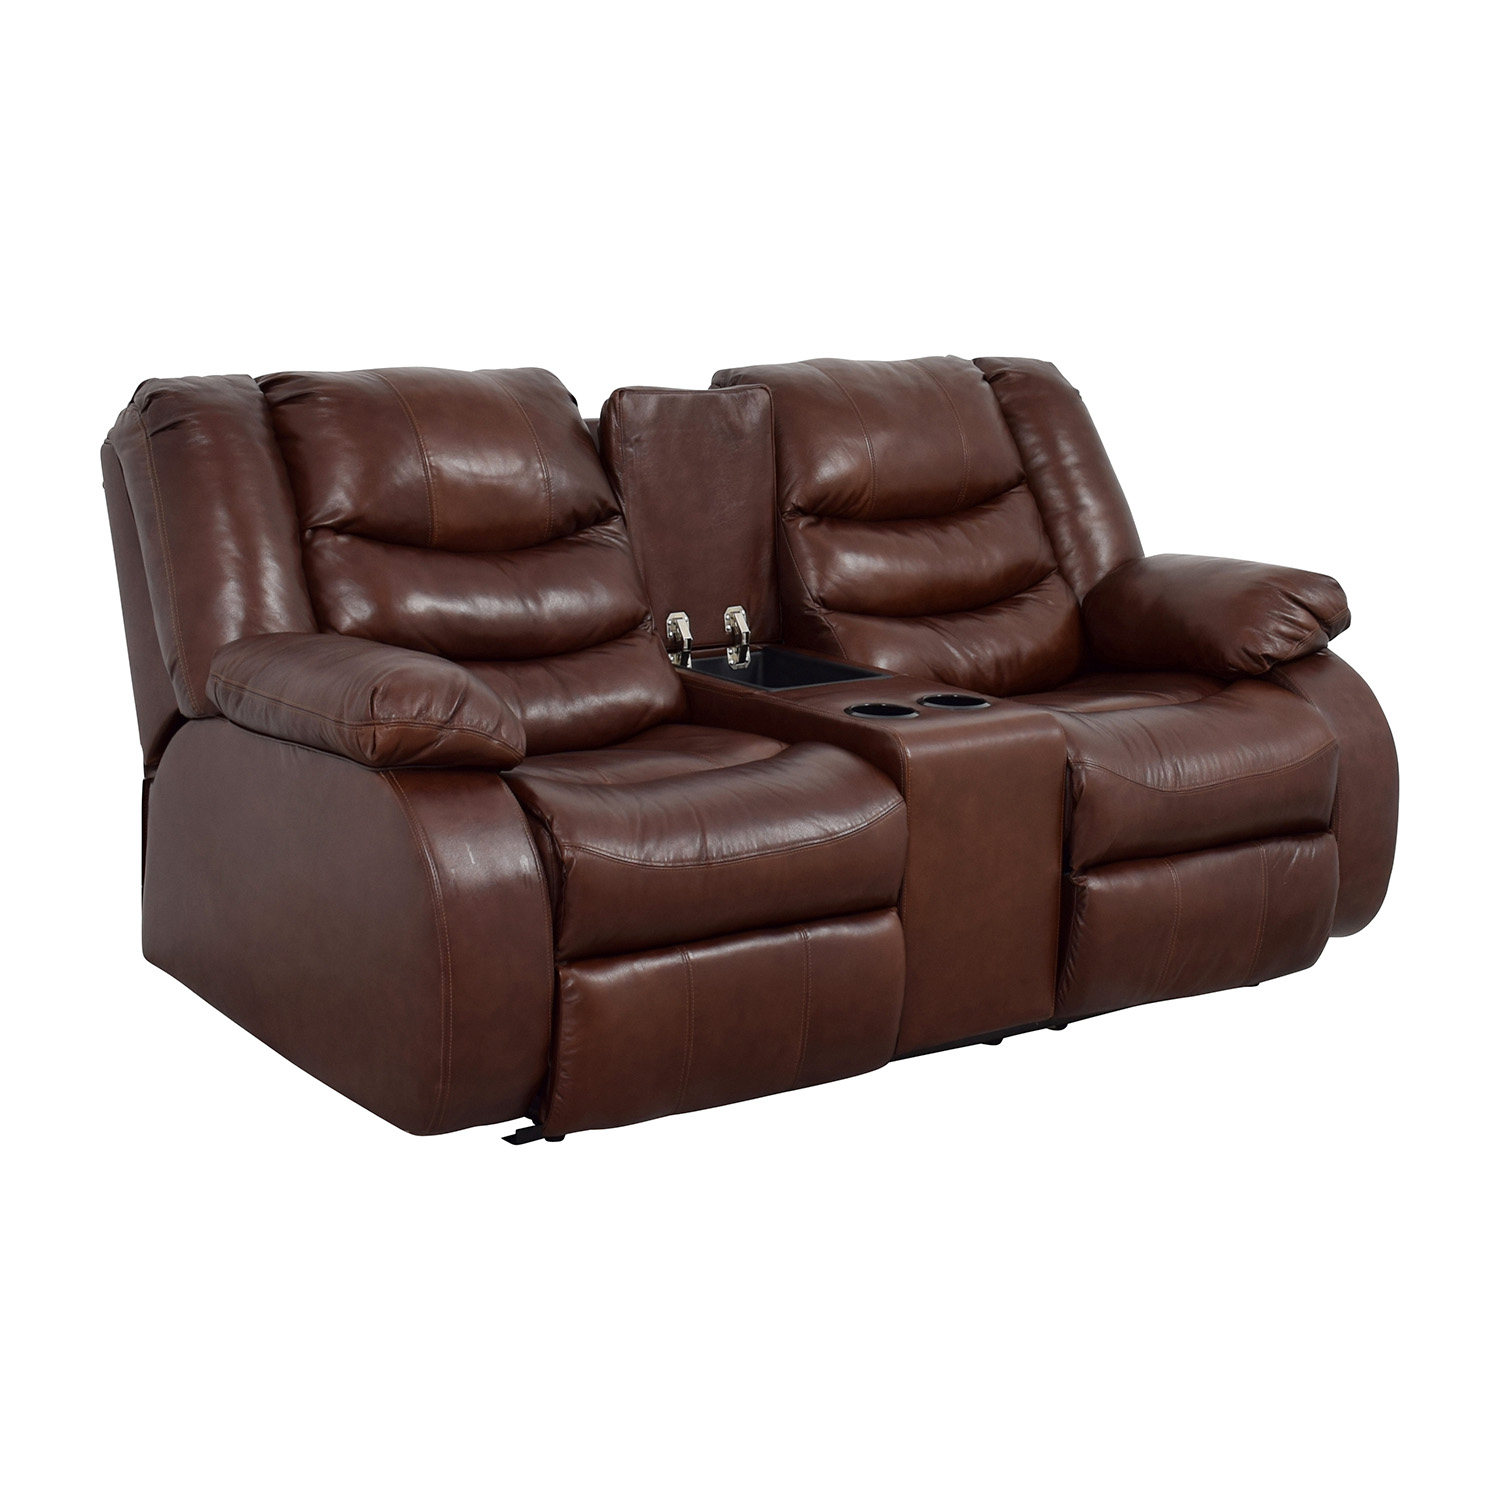 53% OFF Ashley Furniture Ashley Furniture Brown Leather